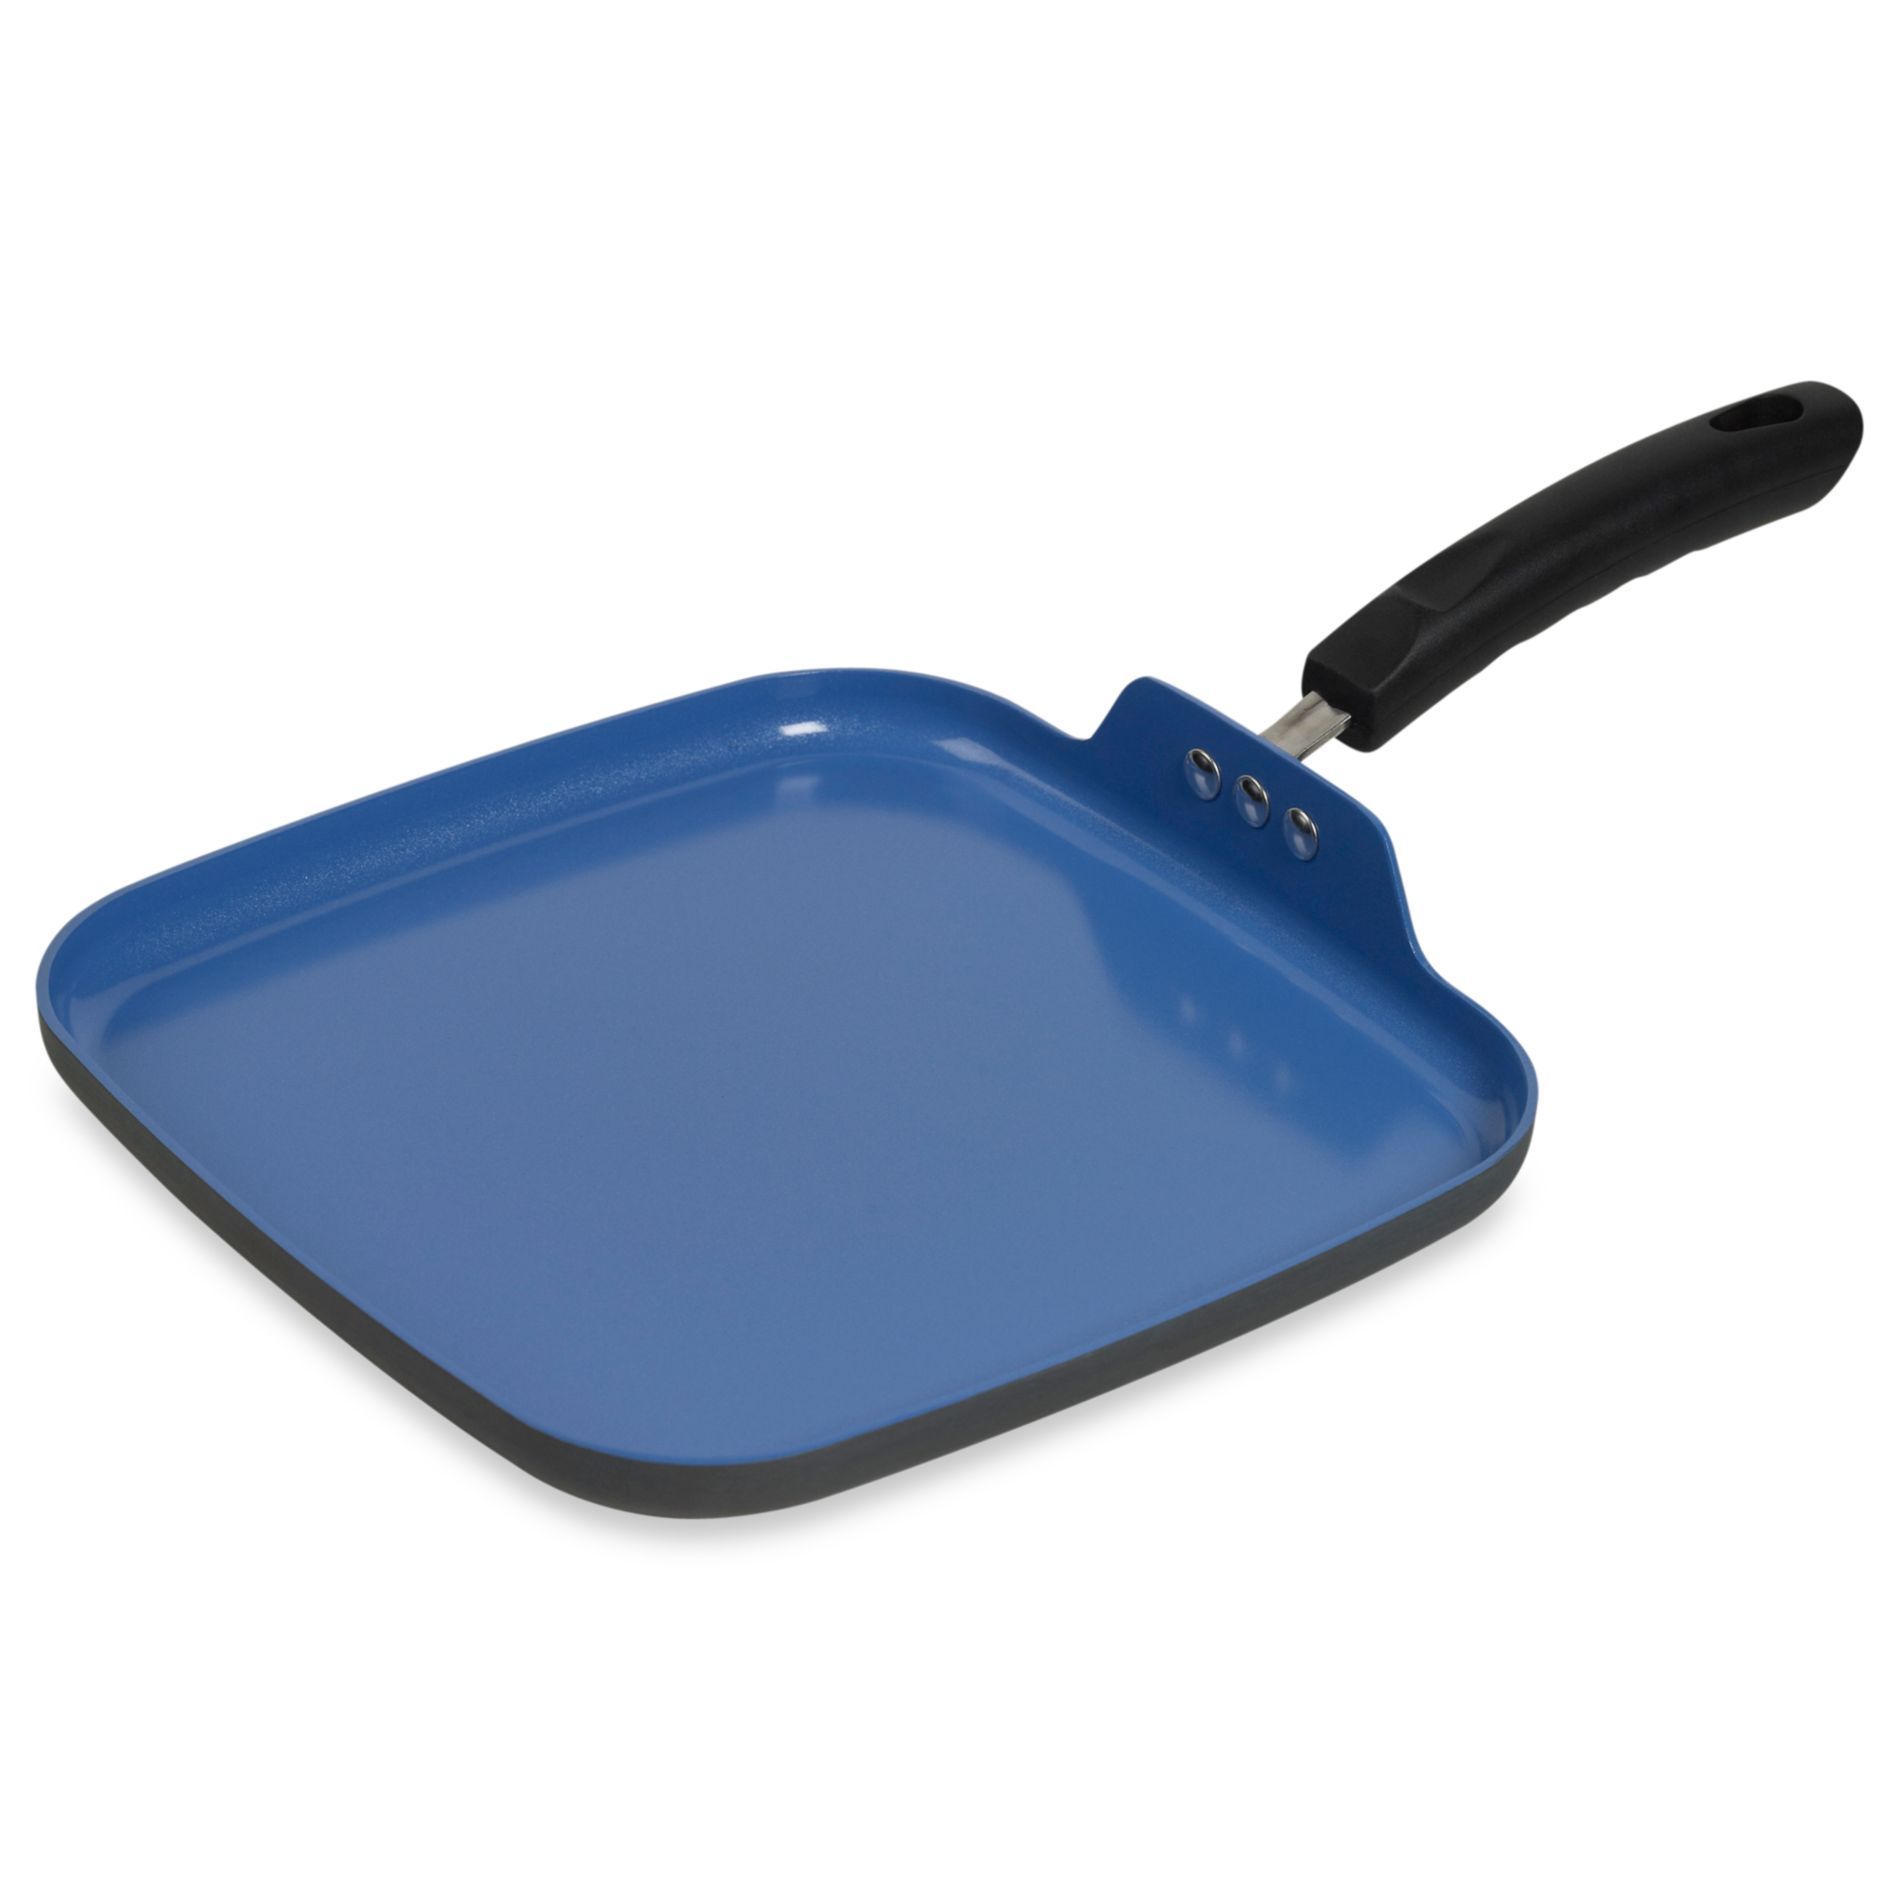 Denmark Tools For Cooks Hard Anodized 10 5 Inch Nonstick Square Griddle Bedbathandbeyond Com Anodized Griddles 10 Things